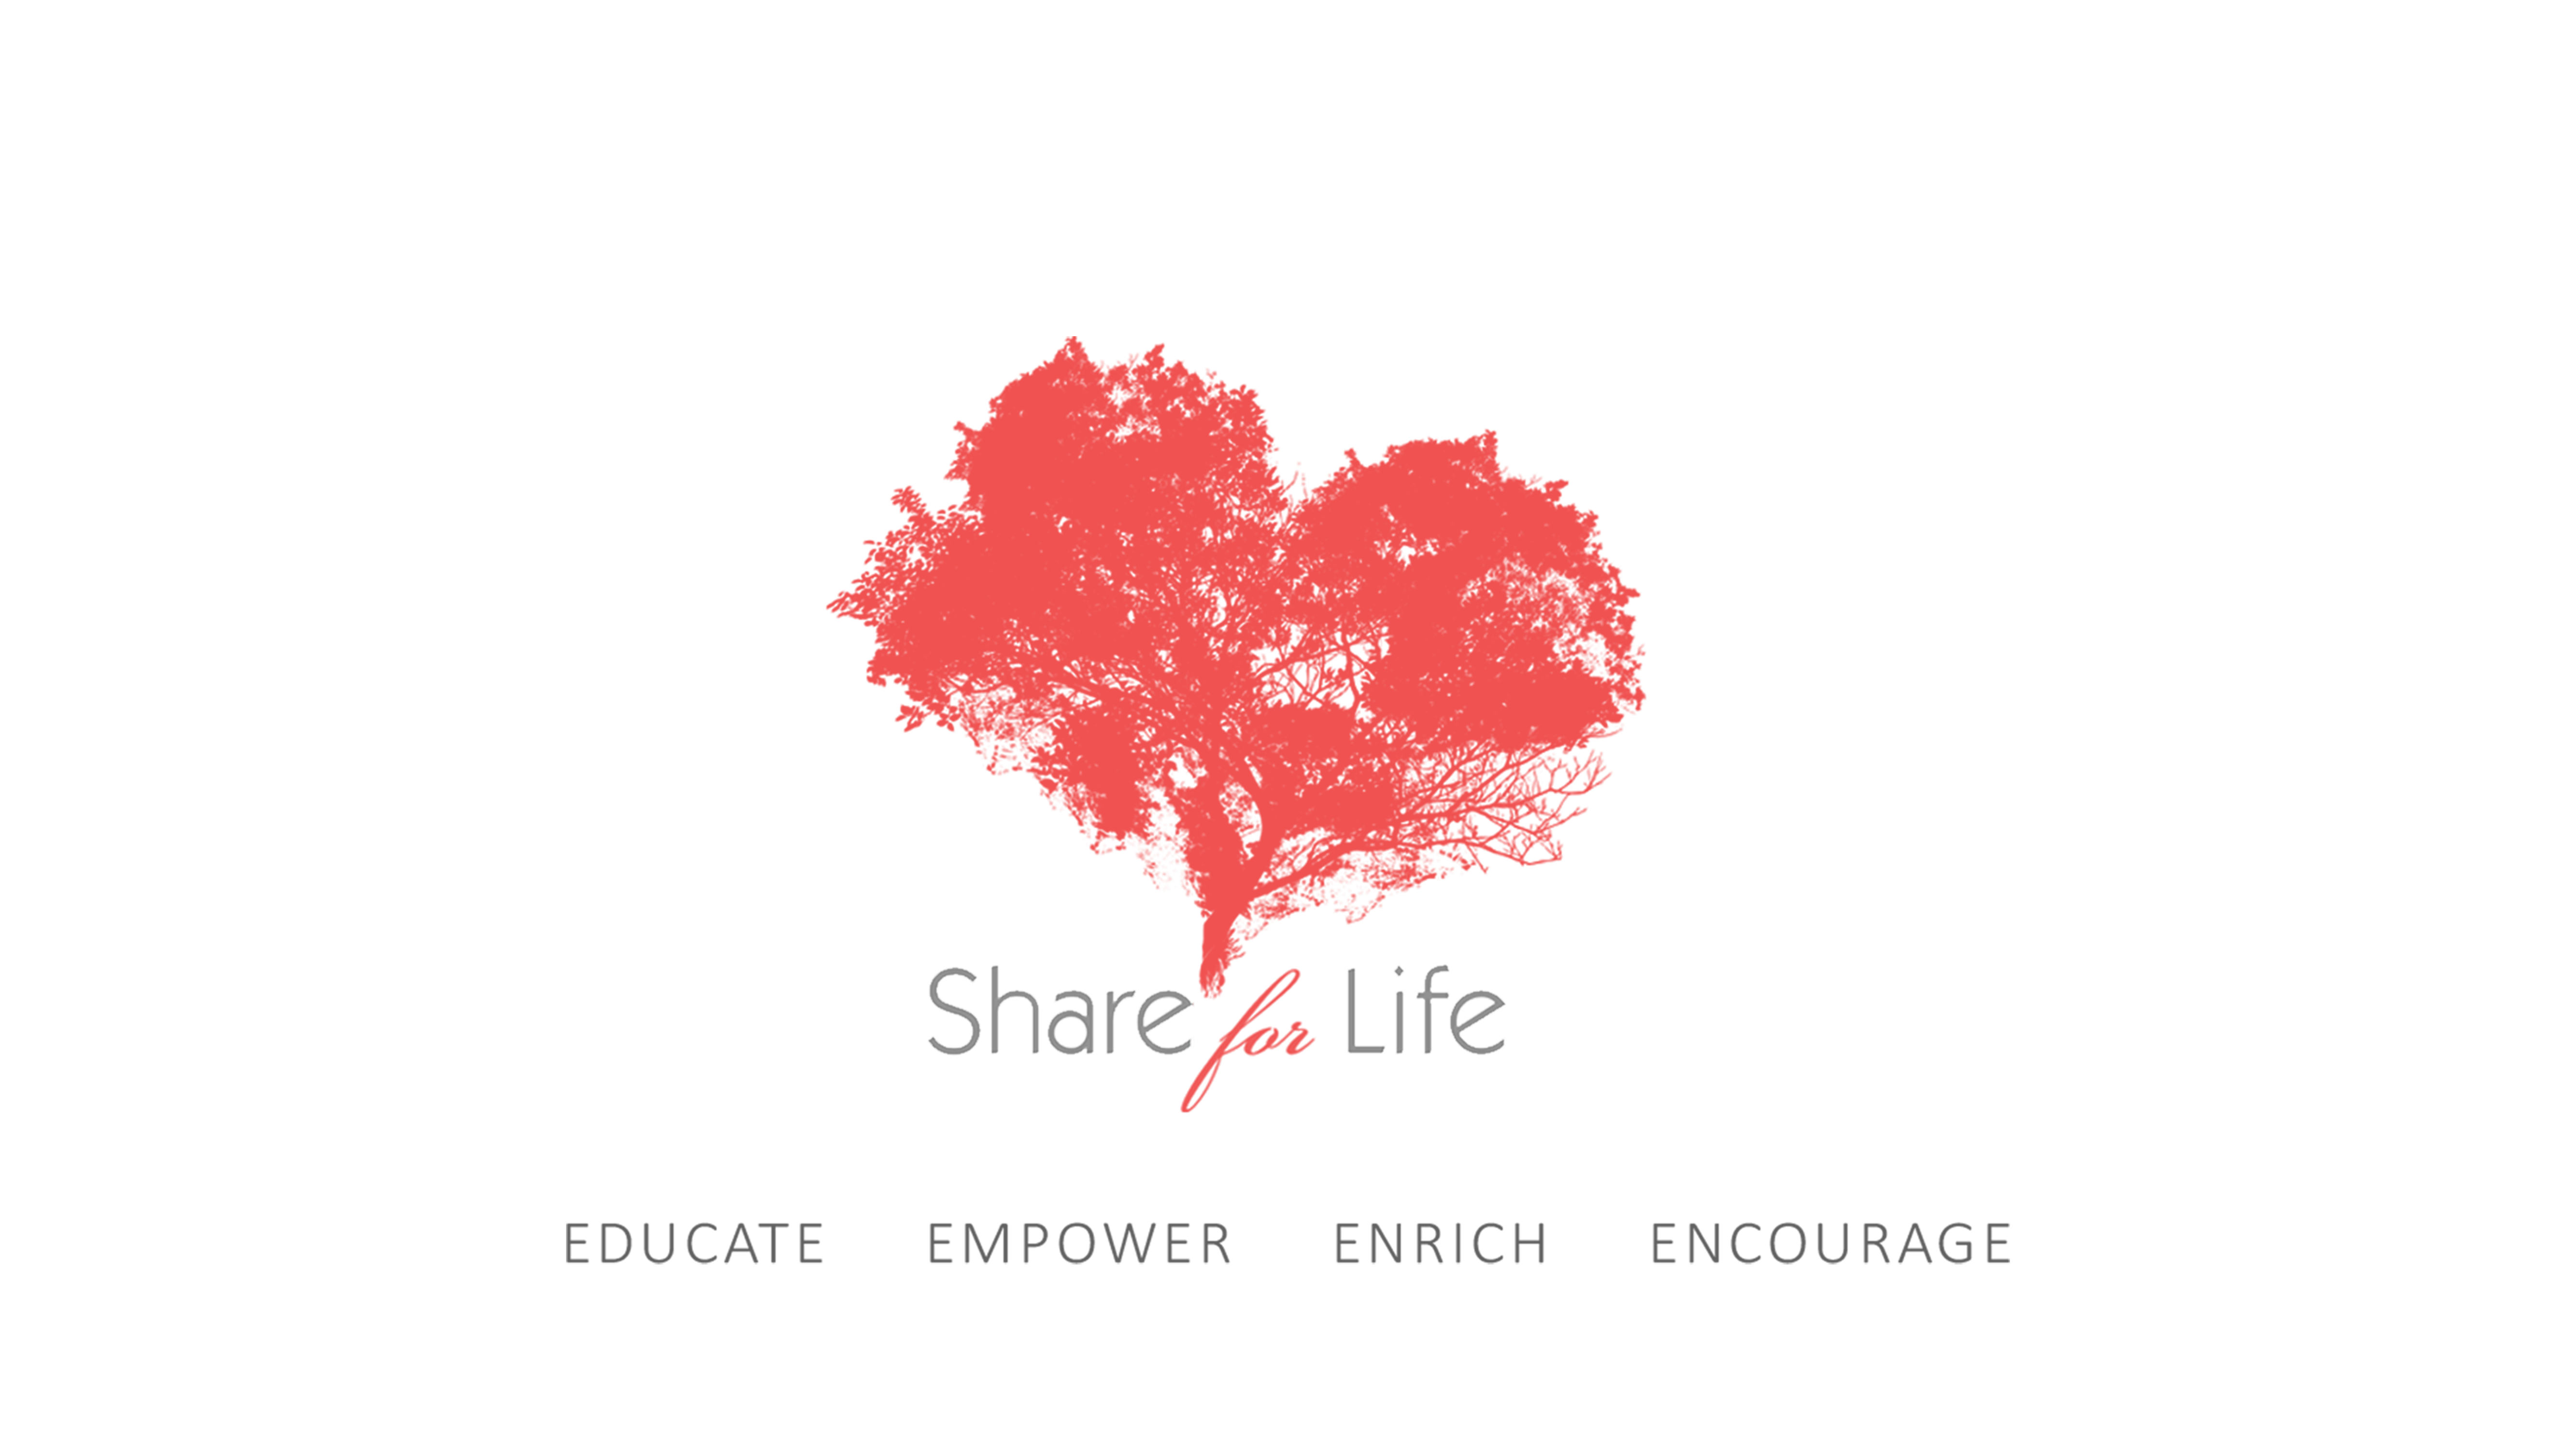 Check out Share For Life Teen Testimonies Video